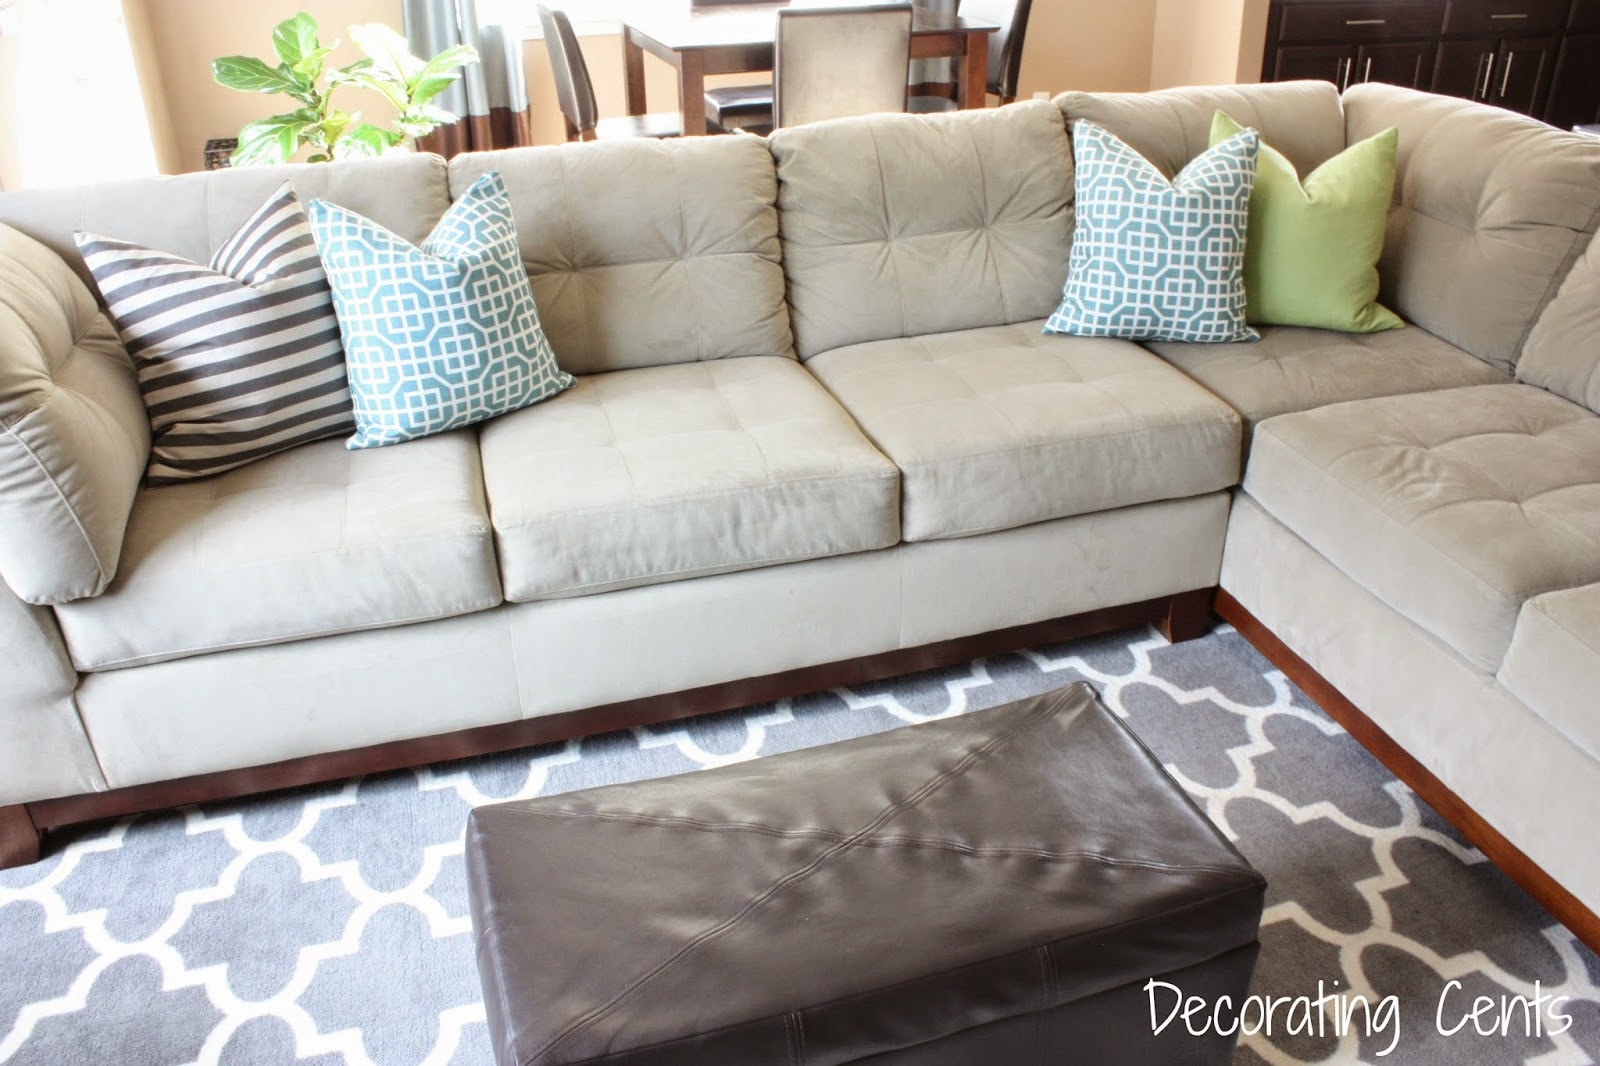 Decorating Cents: Napkin Pillow Covers